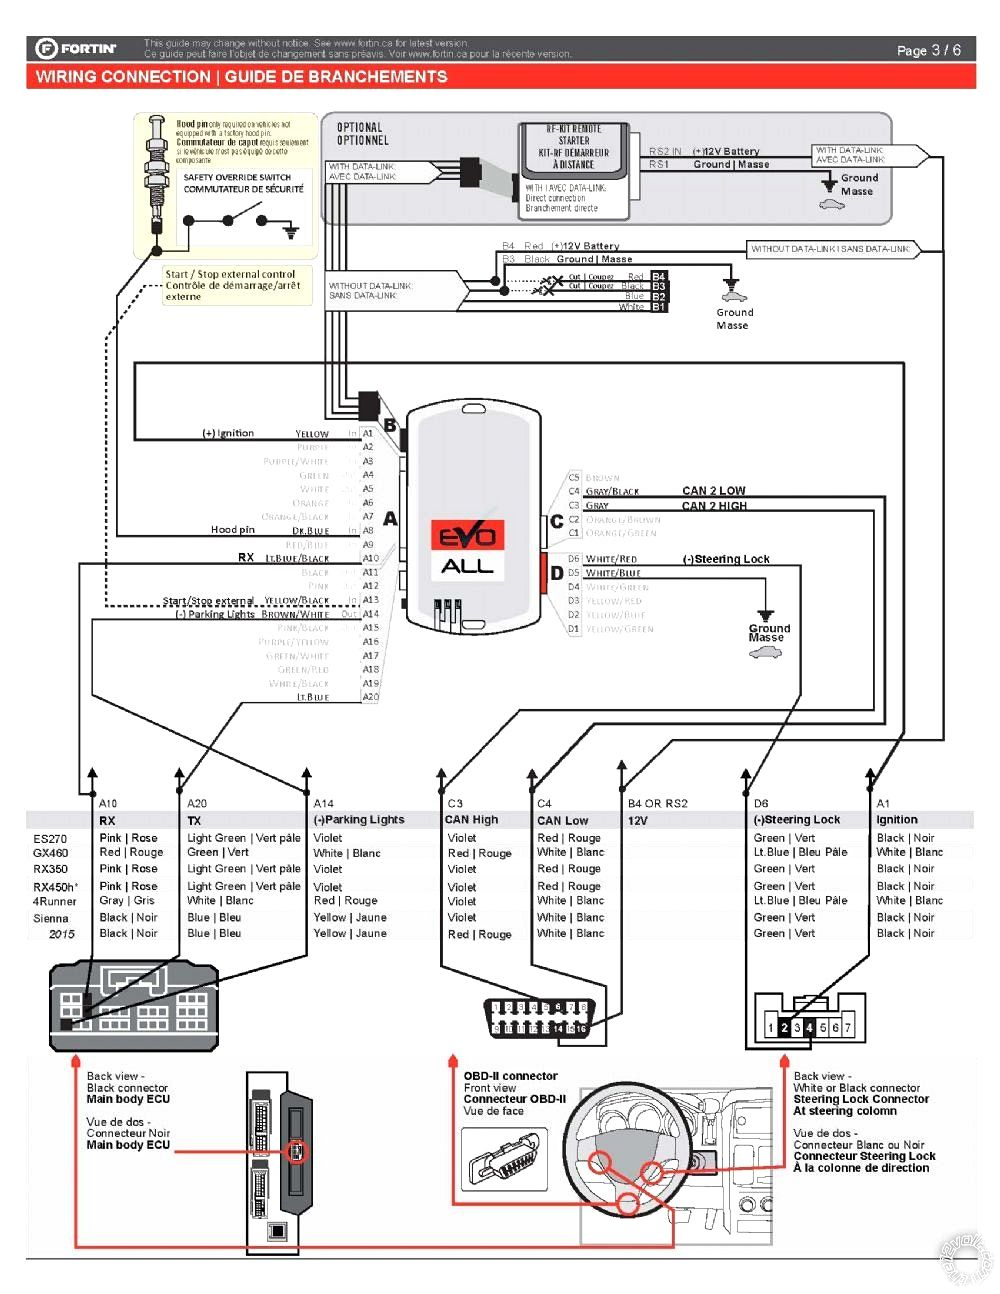 12volt com wiring diagrams lennox conservator iii g16xq4 75 3 12 volt wiring diagram parking light [ 1000 x 1294 Pixel ]